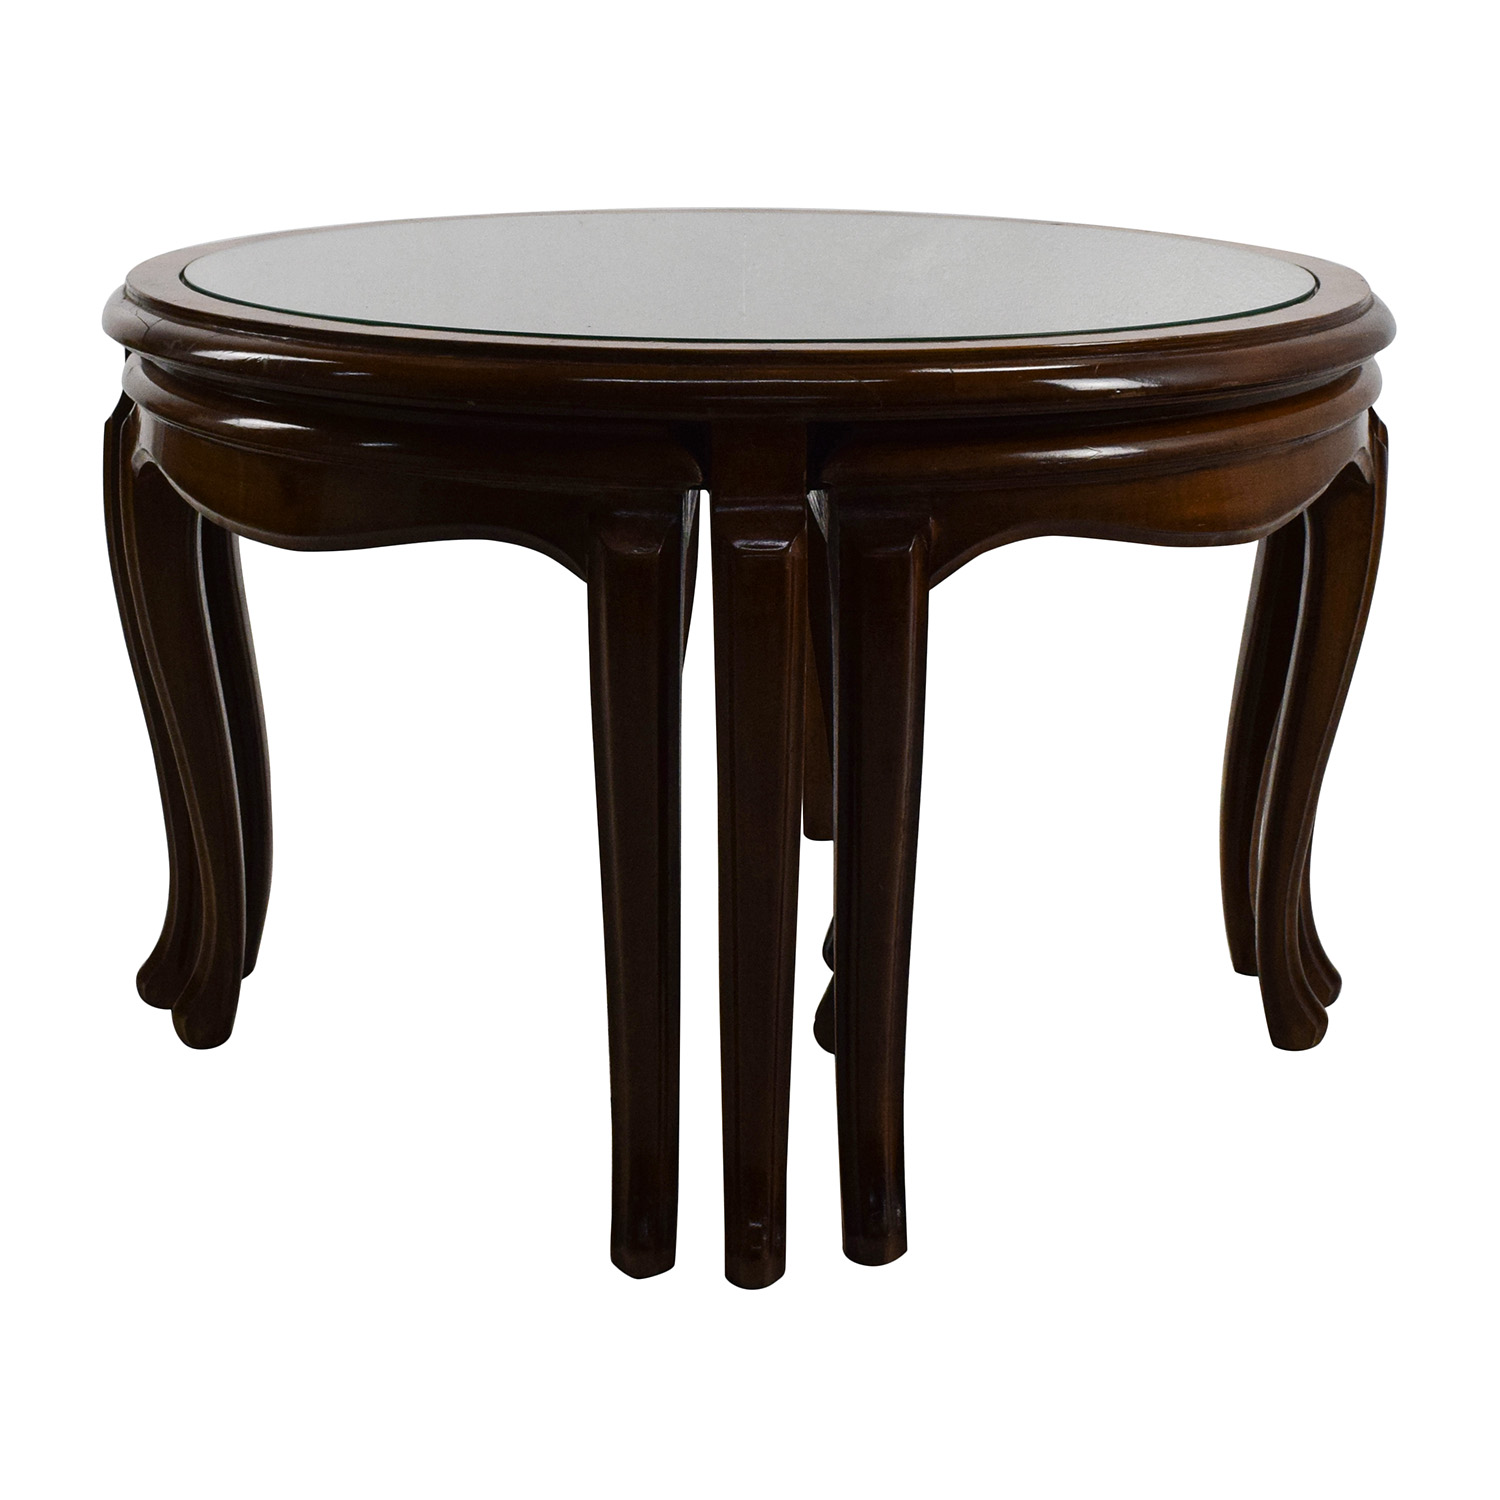 Round Glass Top Coffee Table With 4 Nesting Stools Sale